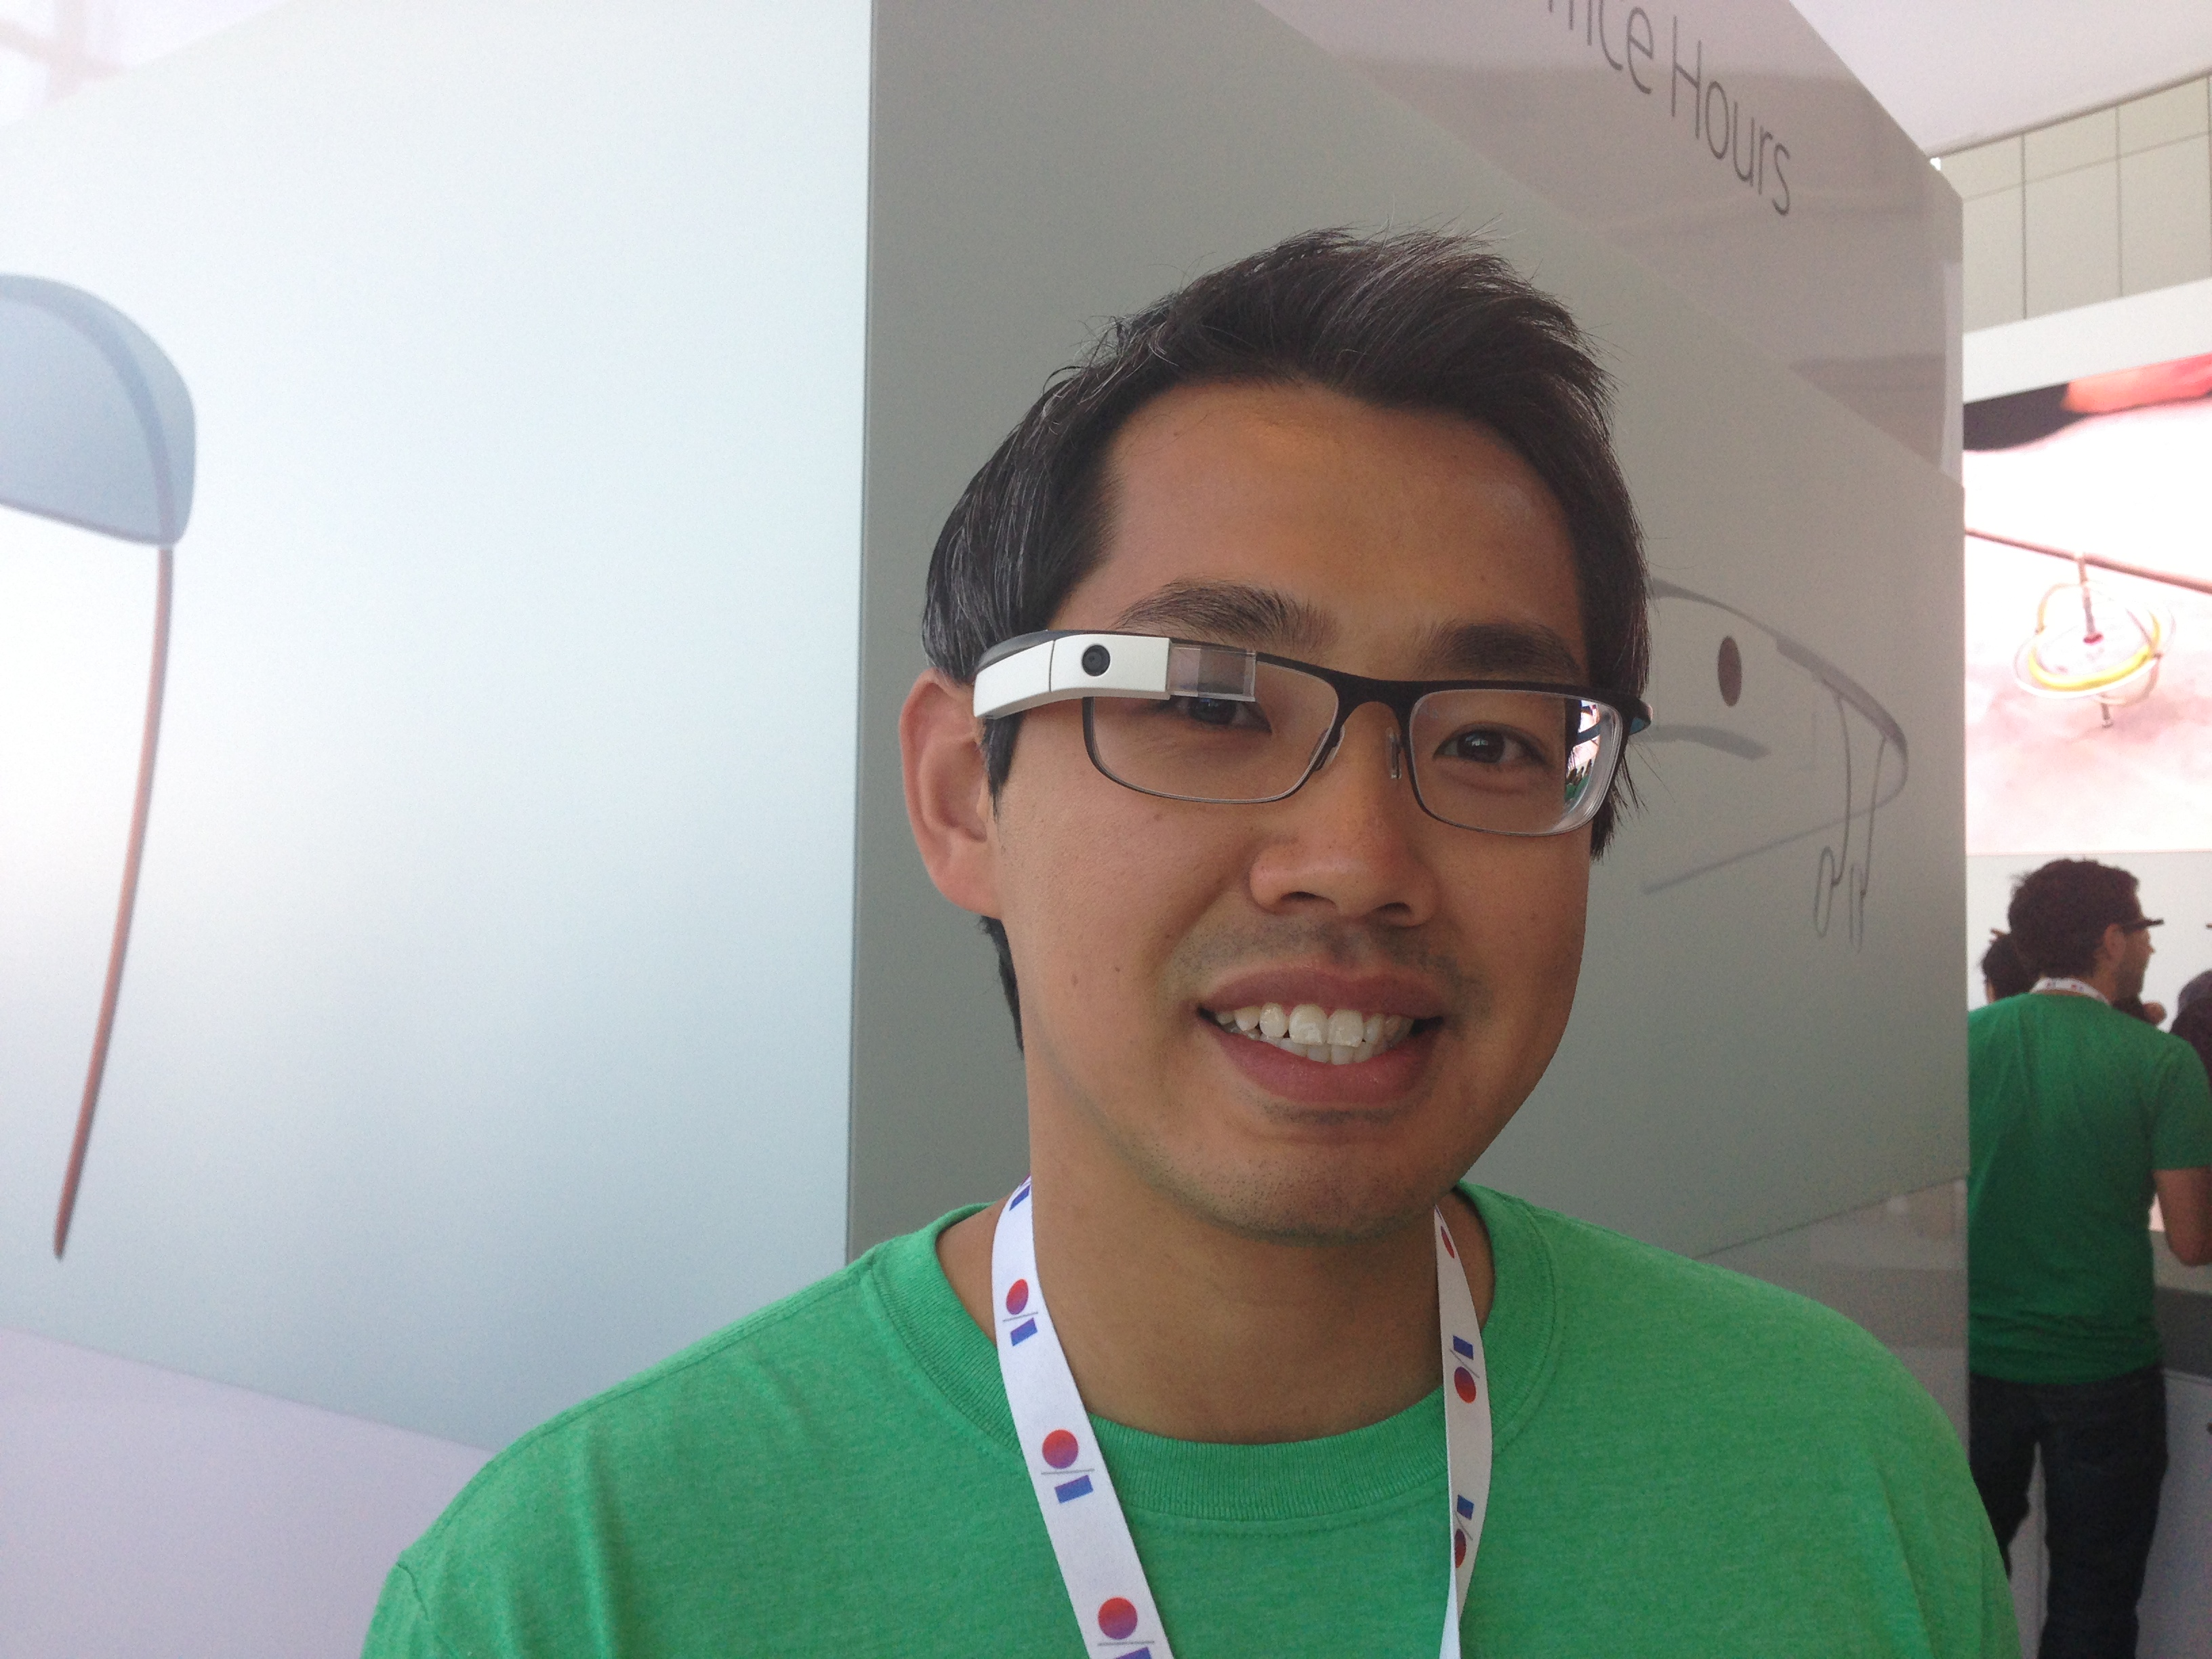 Prescription Google Glass prototype